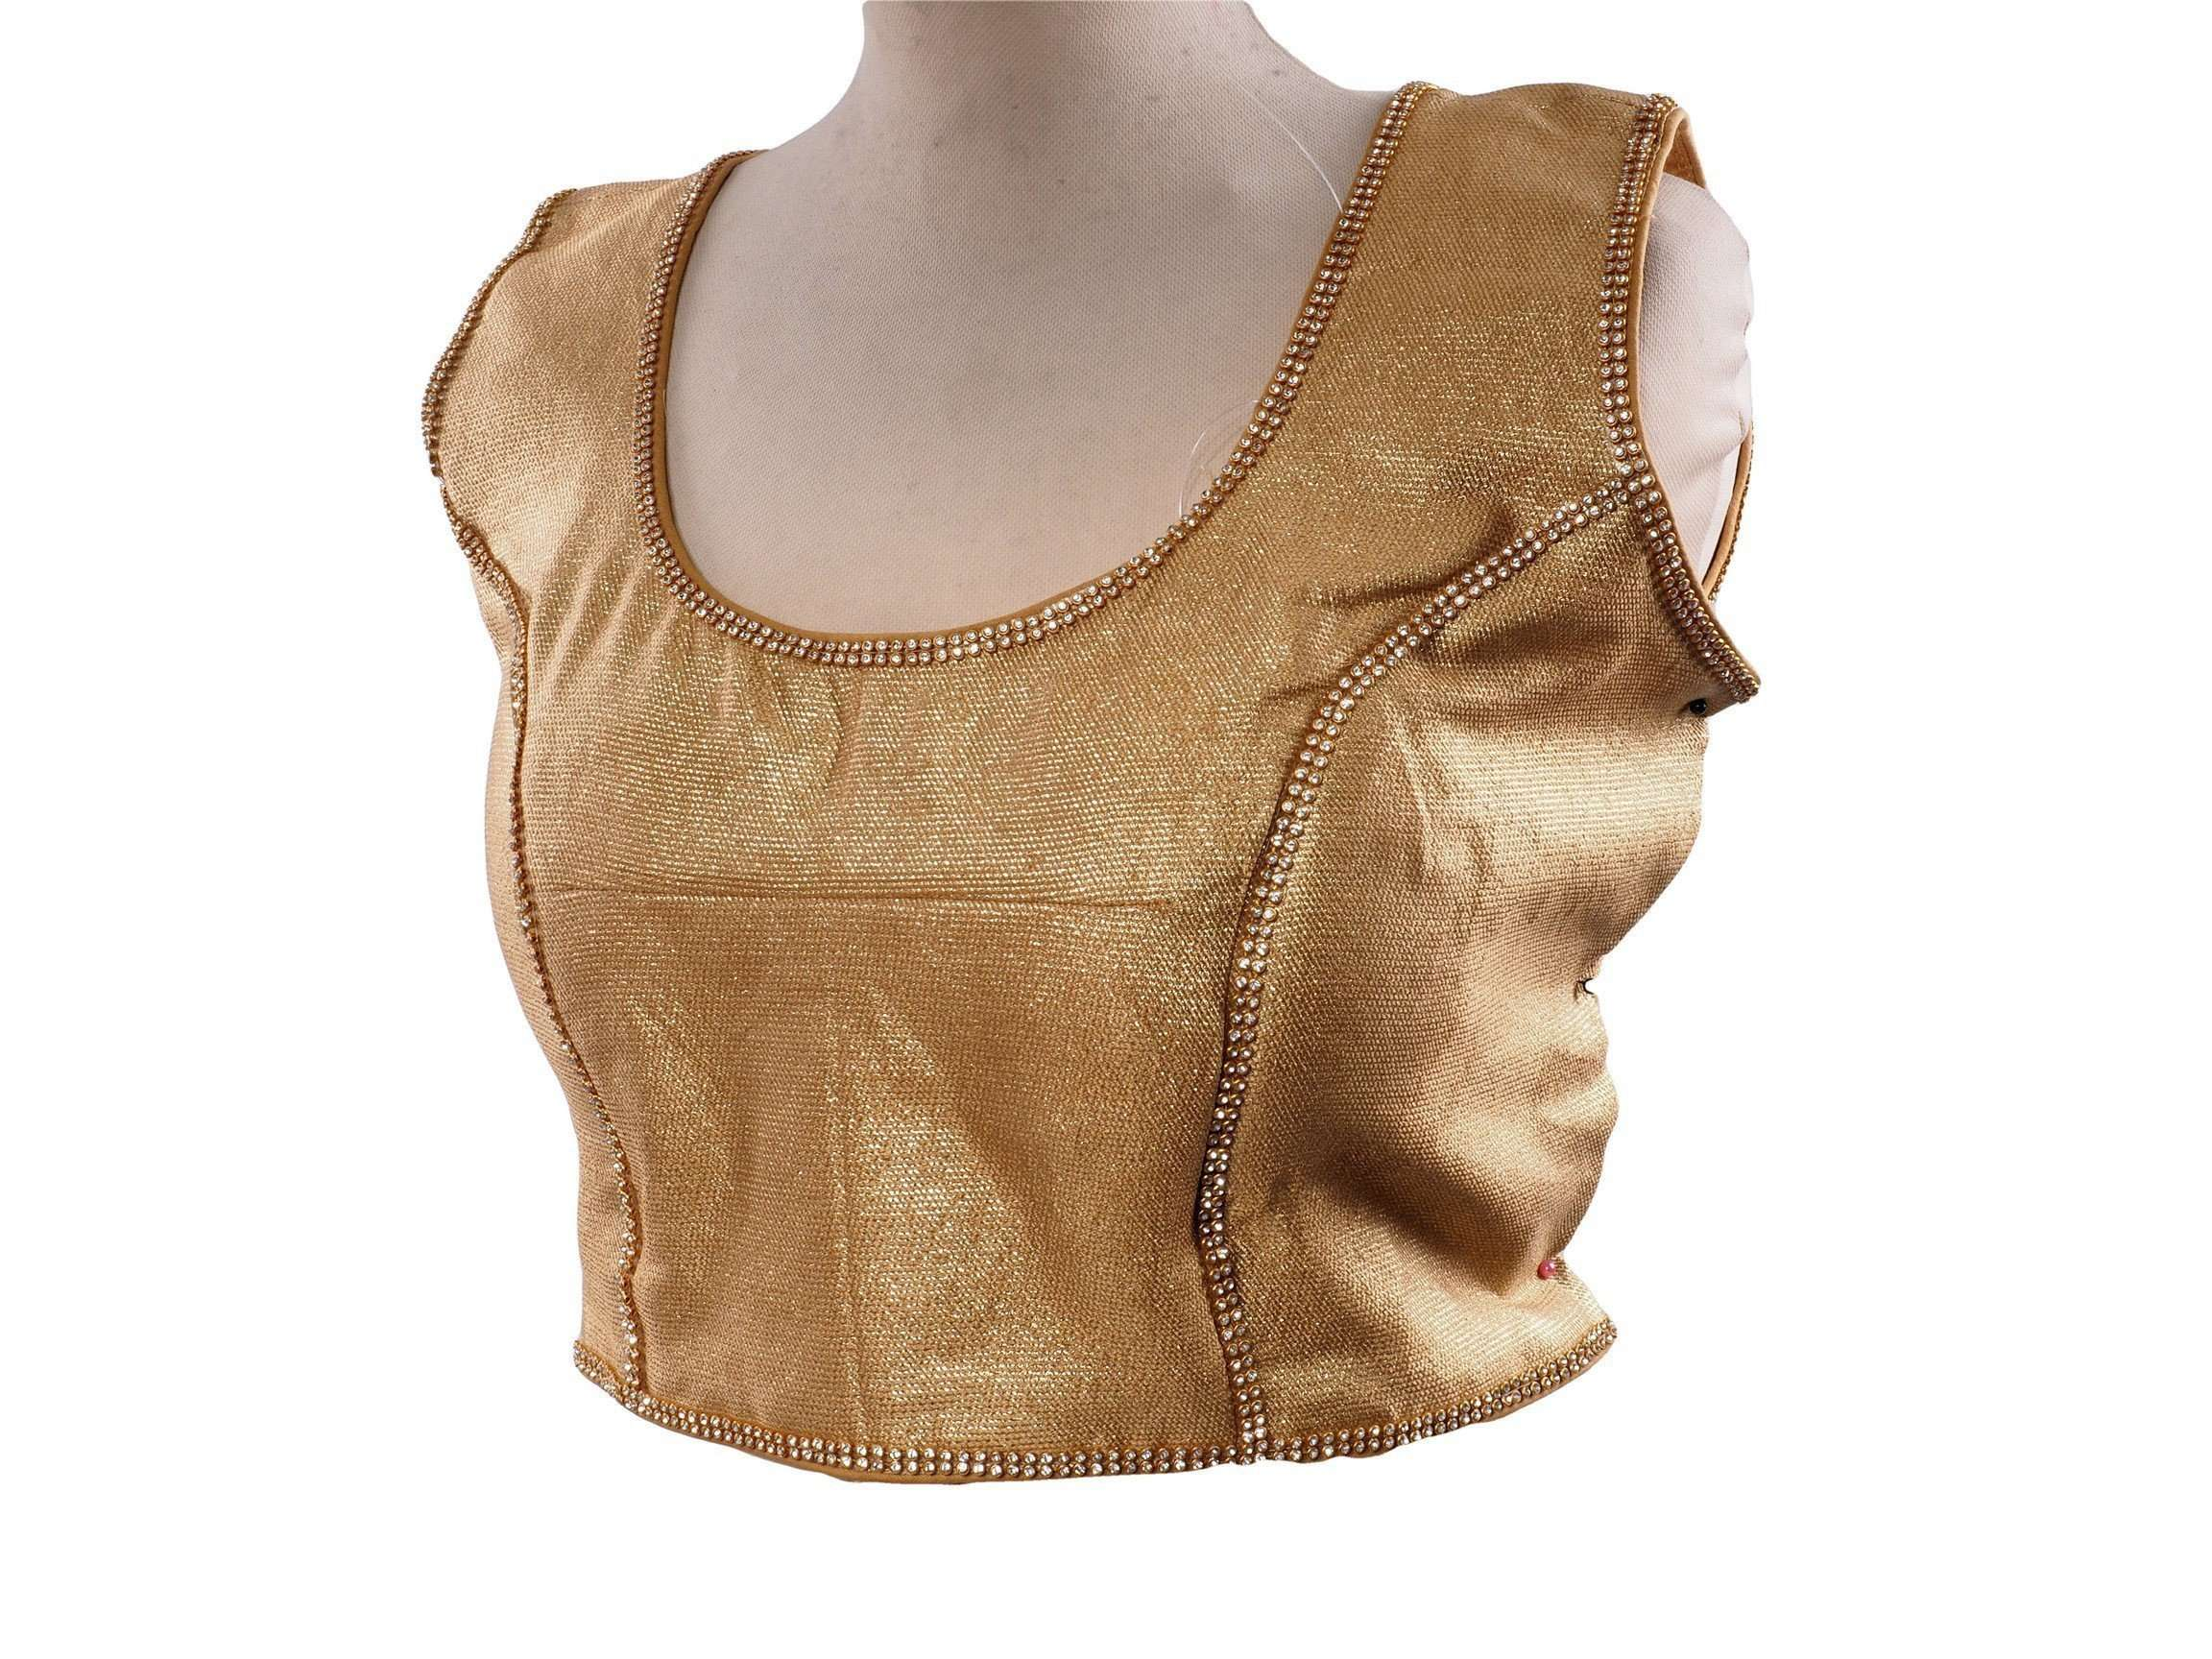 Gold Sleeveless Saree blouse , Back Fasten - Bollywood, Fancy dress - KJF549C - Prachy Creations